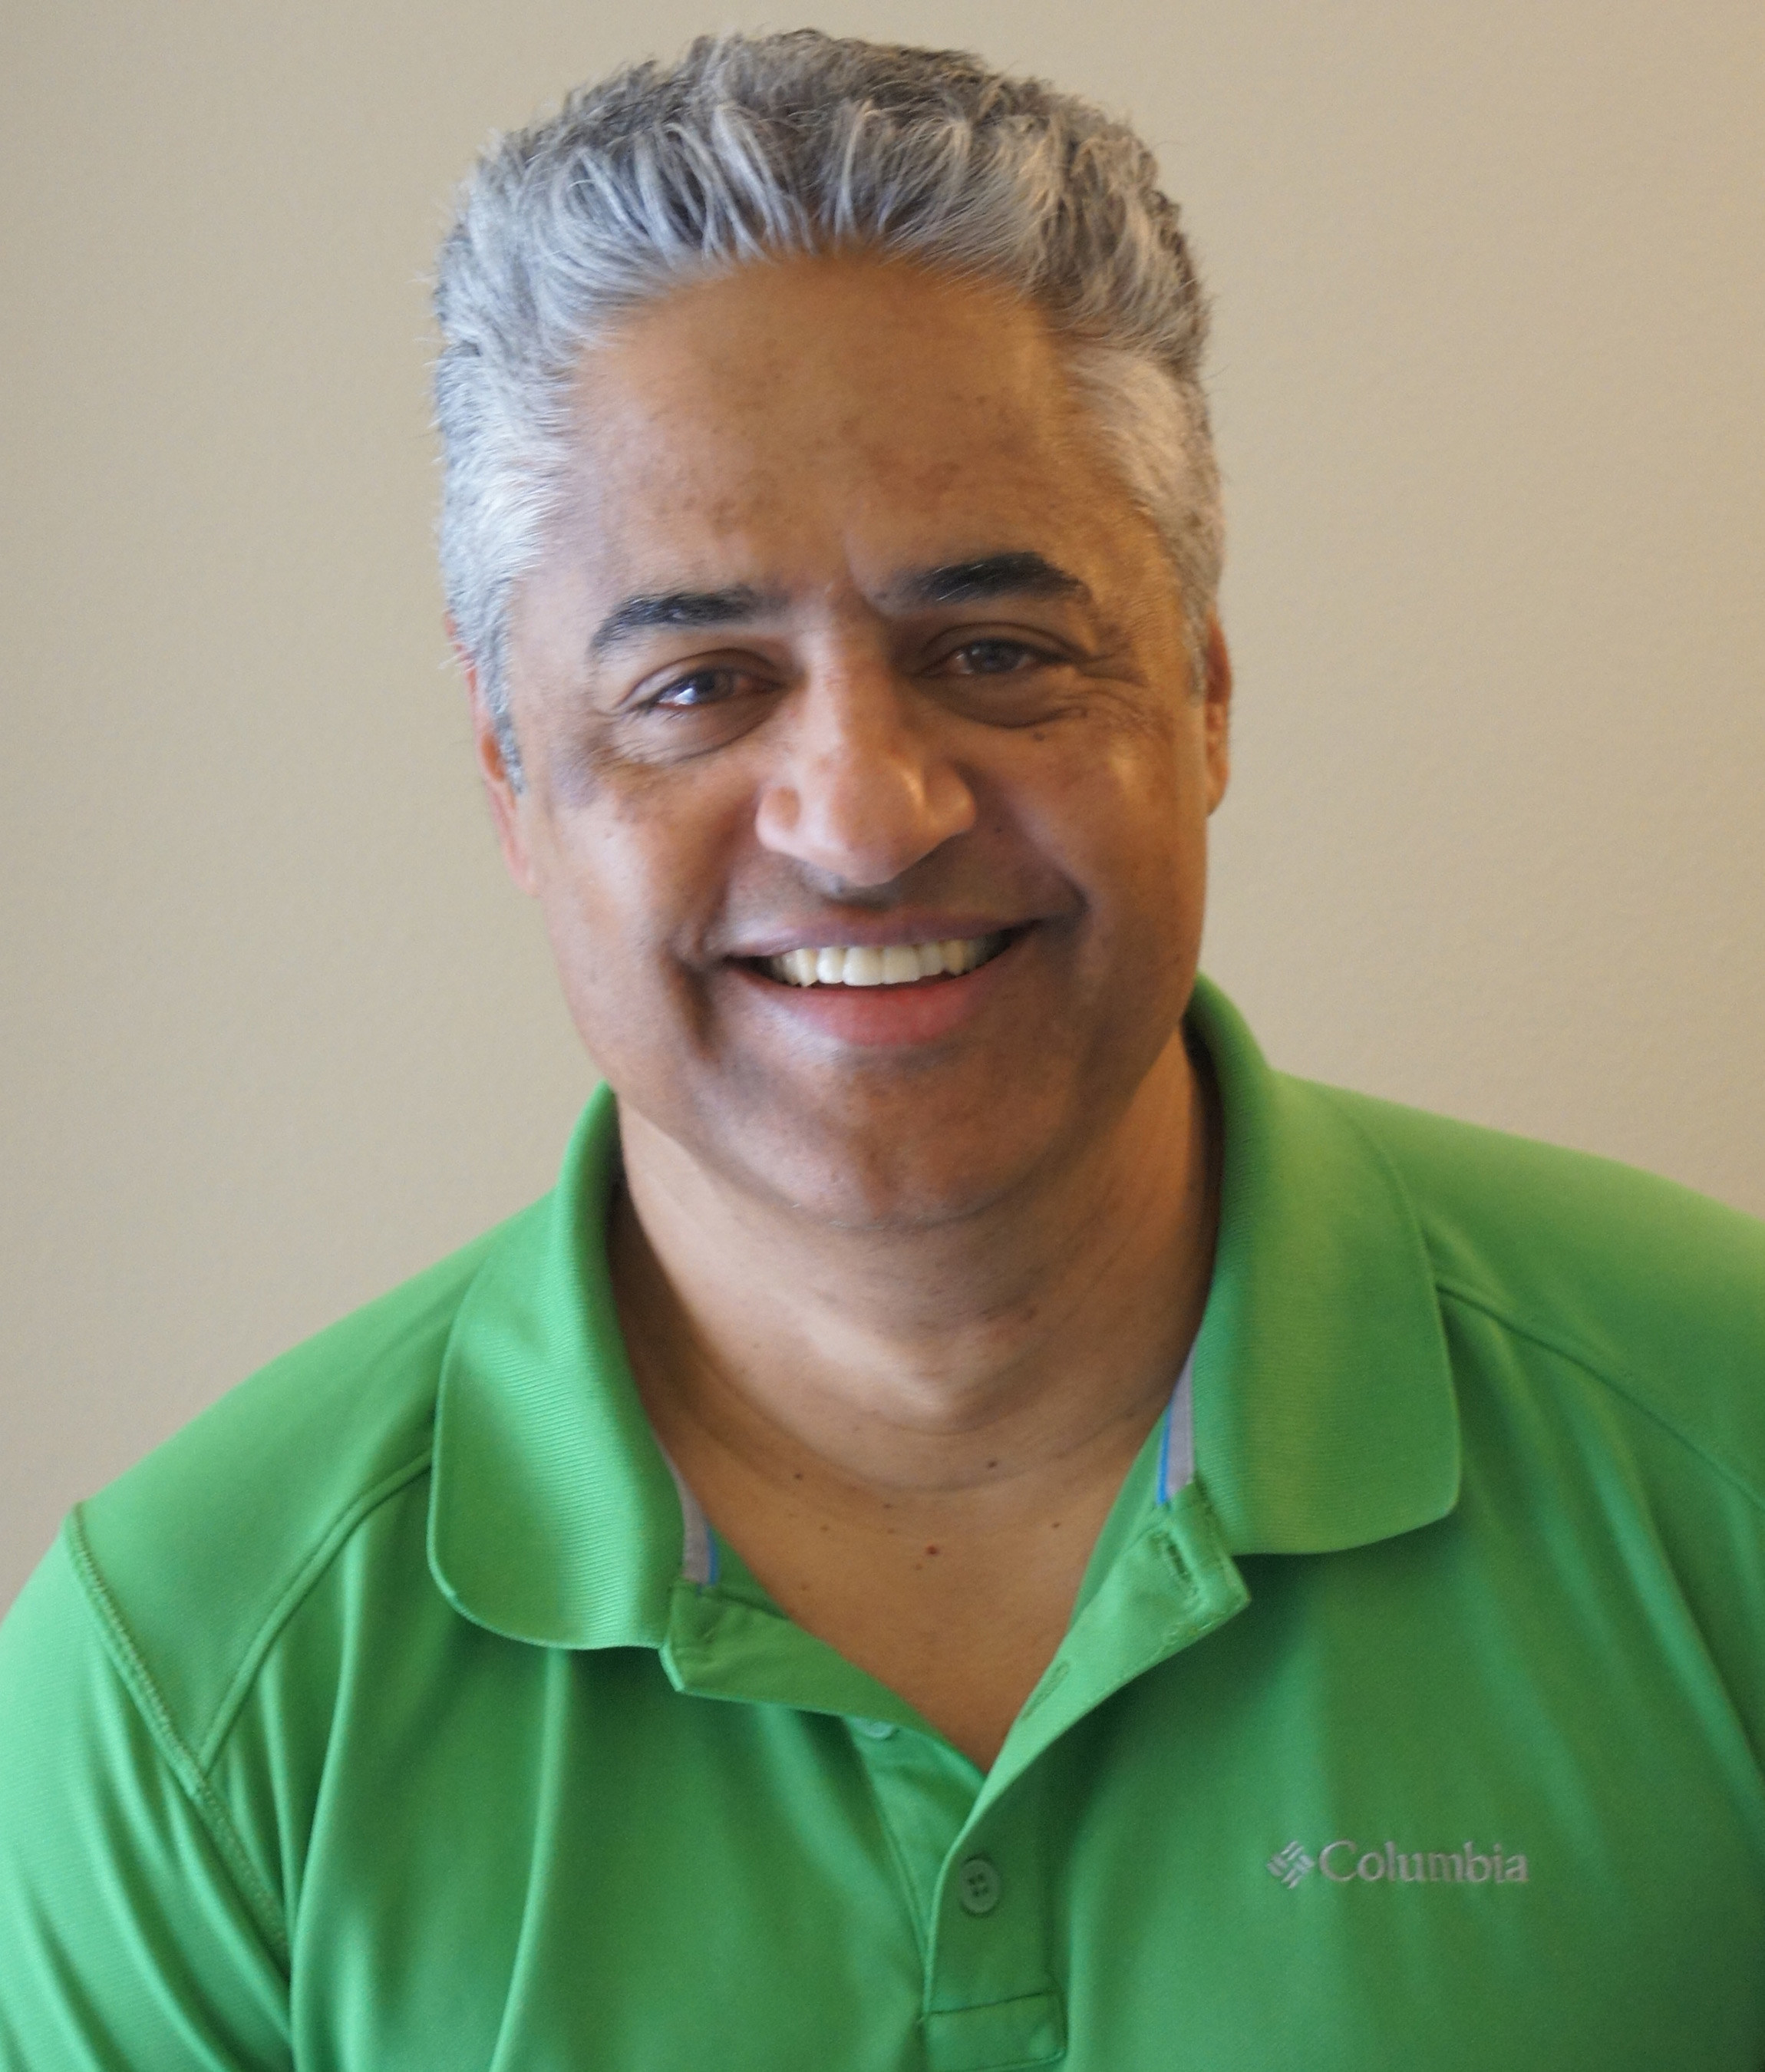 Shakil Haroon, founder and CEO of MPIRICA Health Analytics, a healthcare technology company in Seattle, WA. ...